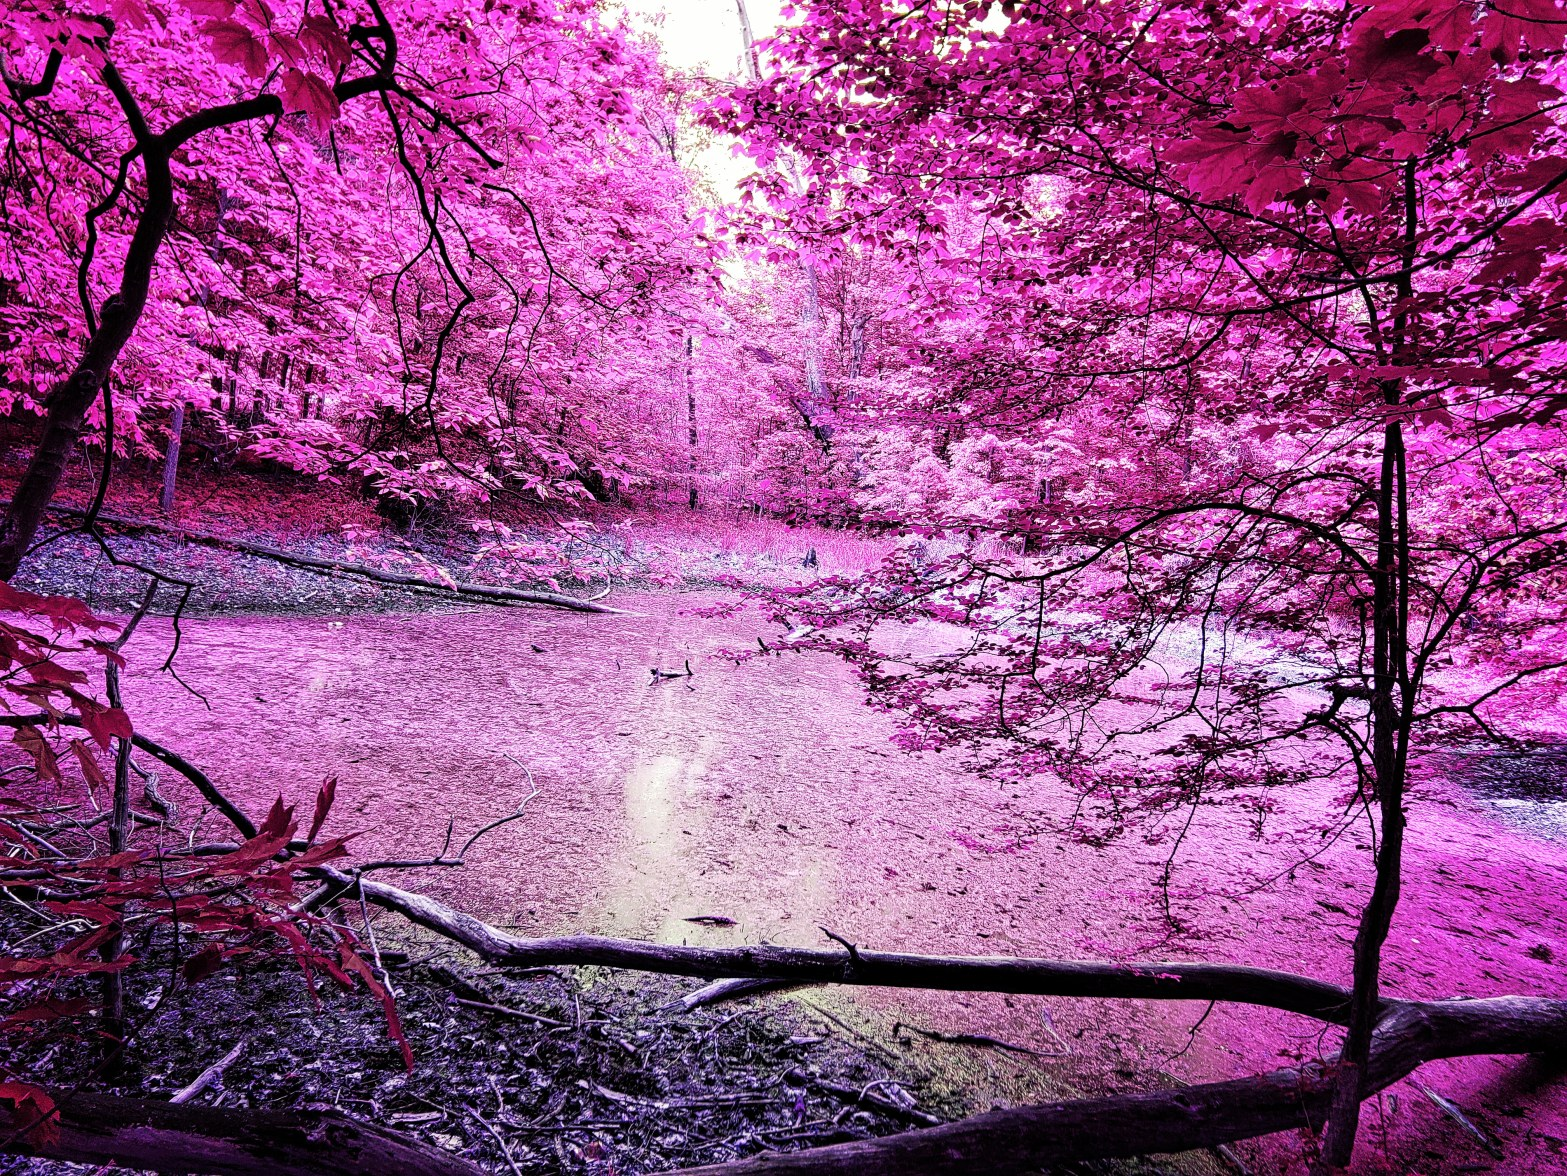 a swamp filled with alge that is surrounded by trees. The trees have been edited to be a hot rosy pink color.